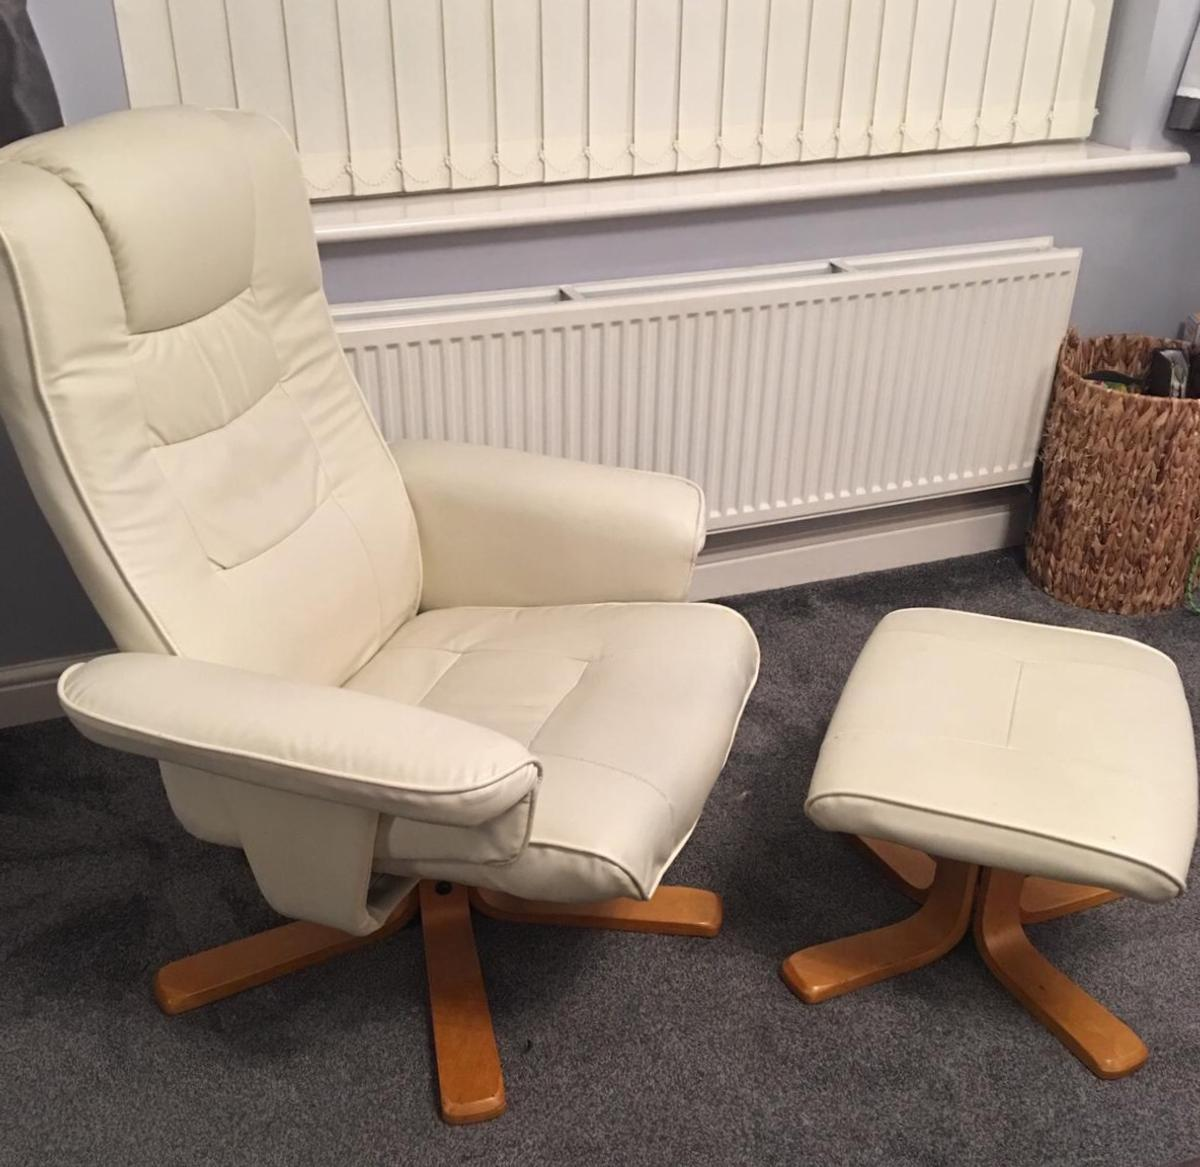 Picture of: Cream Leather Recliner Chair With Footstool In Rotherham For 60 00 For Sale Shpock